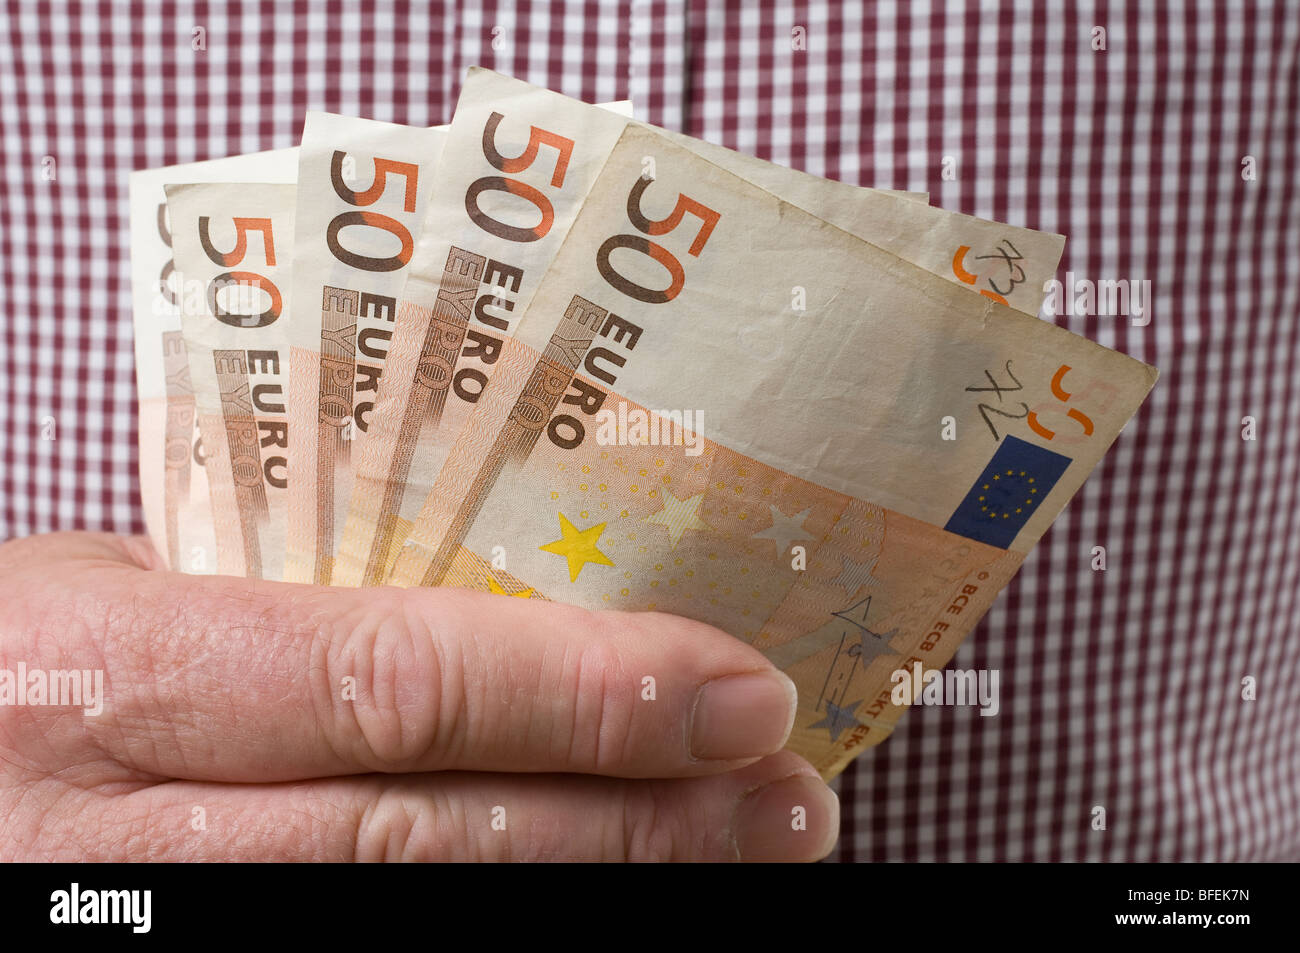 A poker hand of used Euro banknotes .- A man's hand holding Euro banknotes. - Stock Image